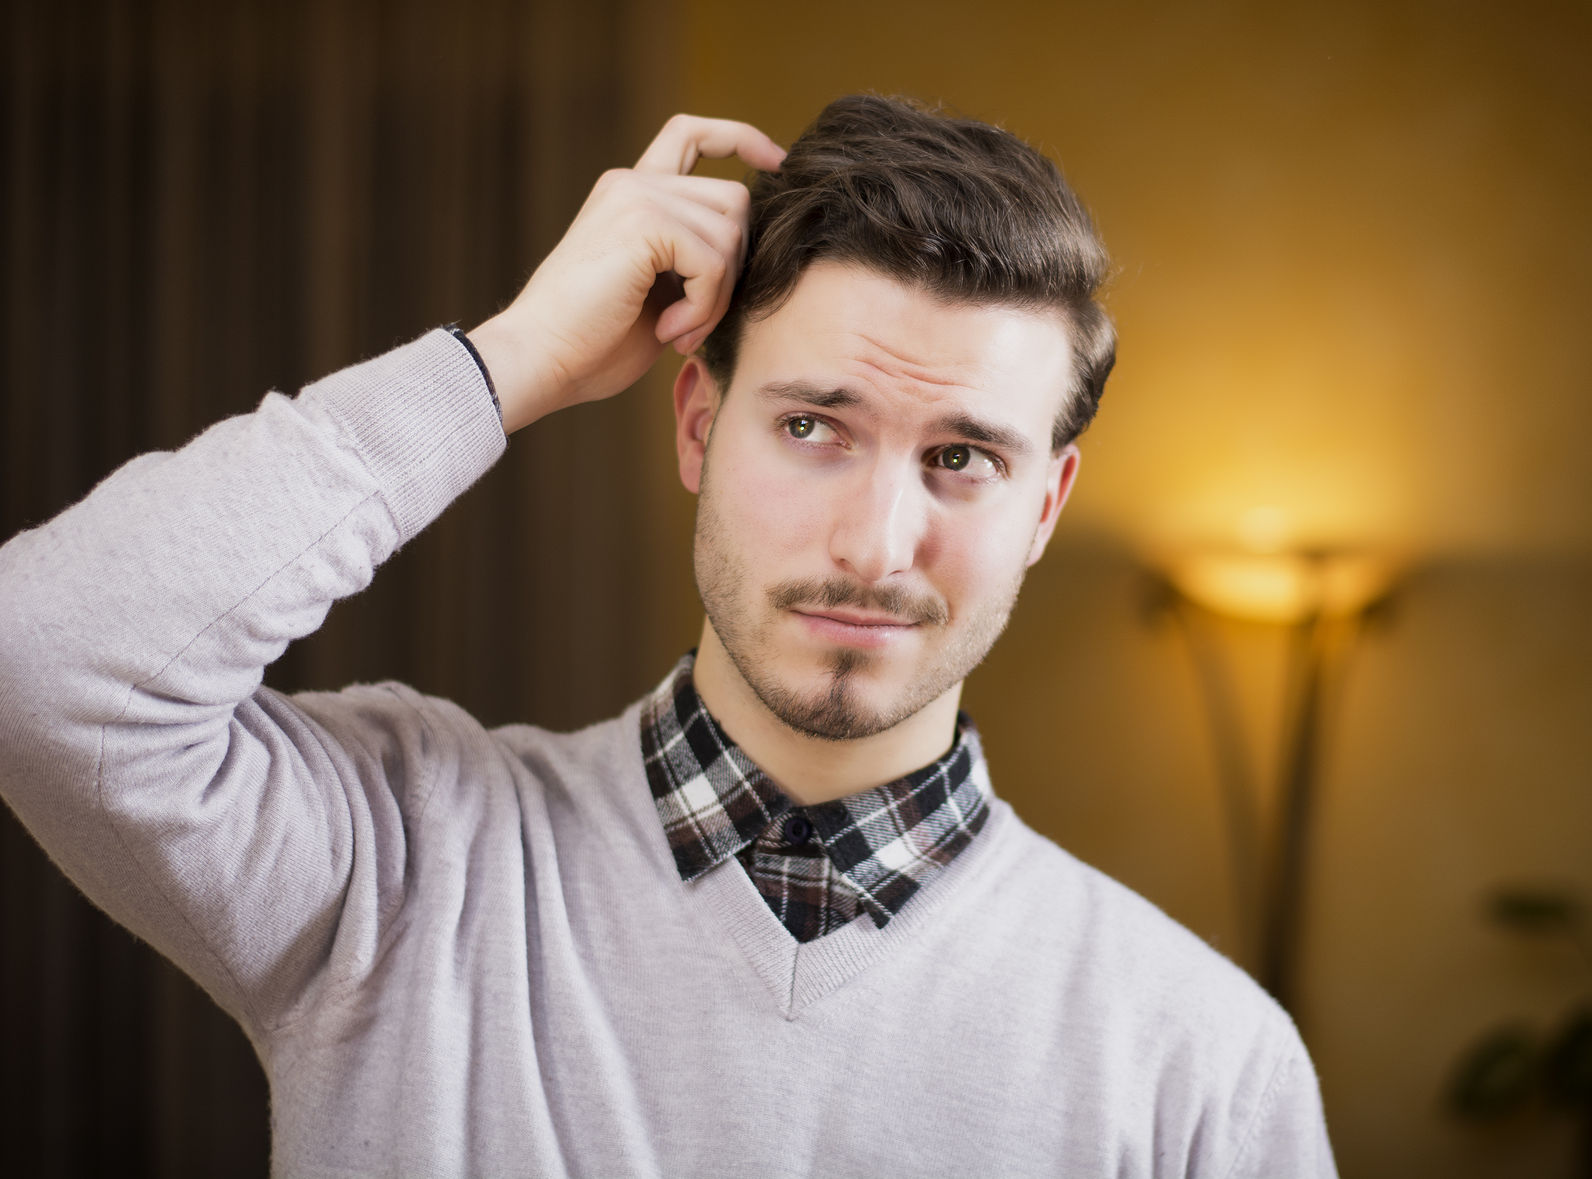 young man scratching his head in confusion